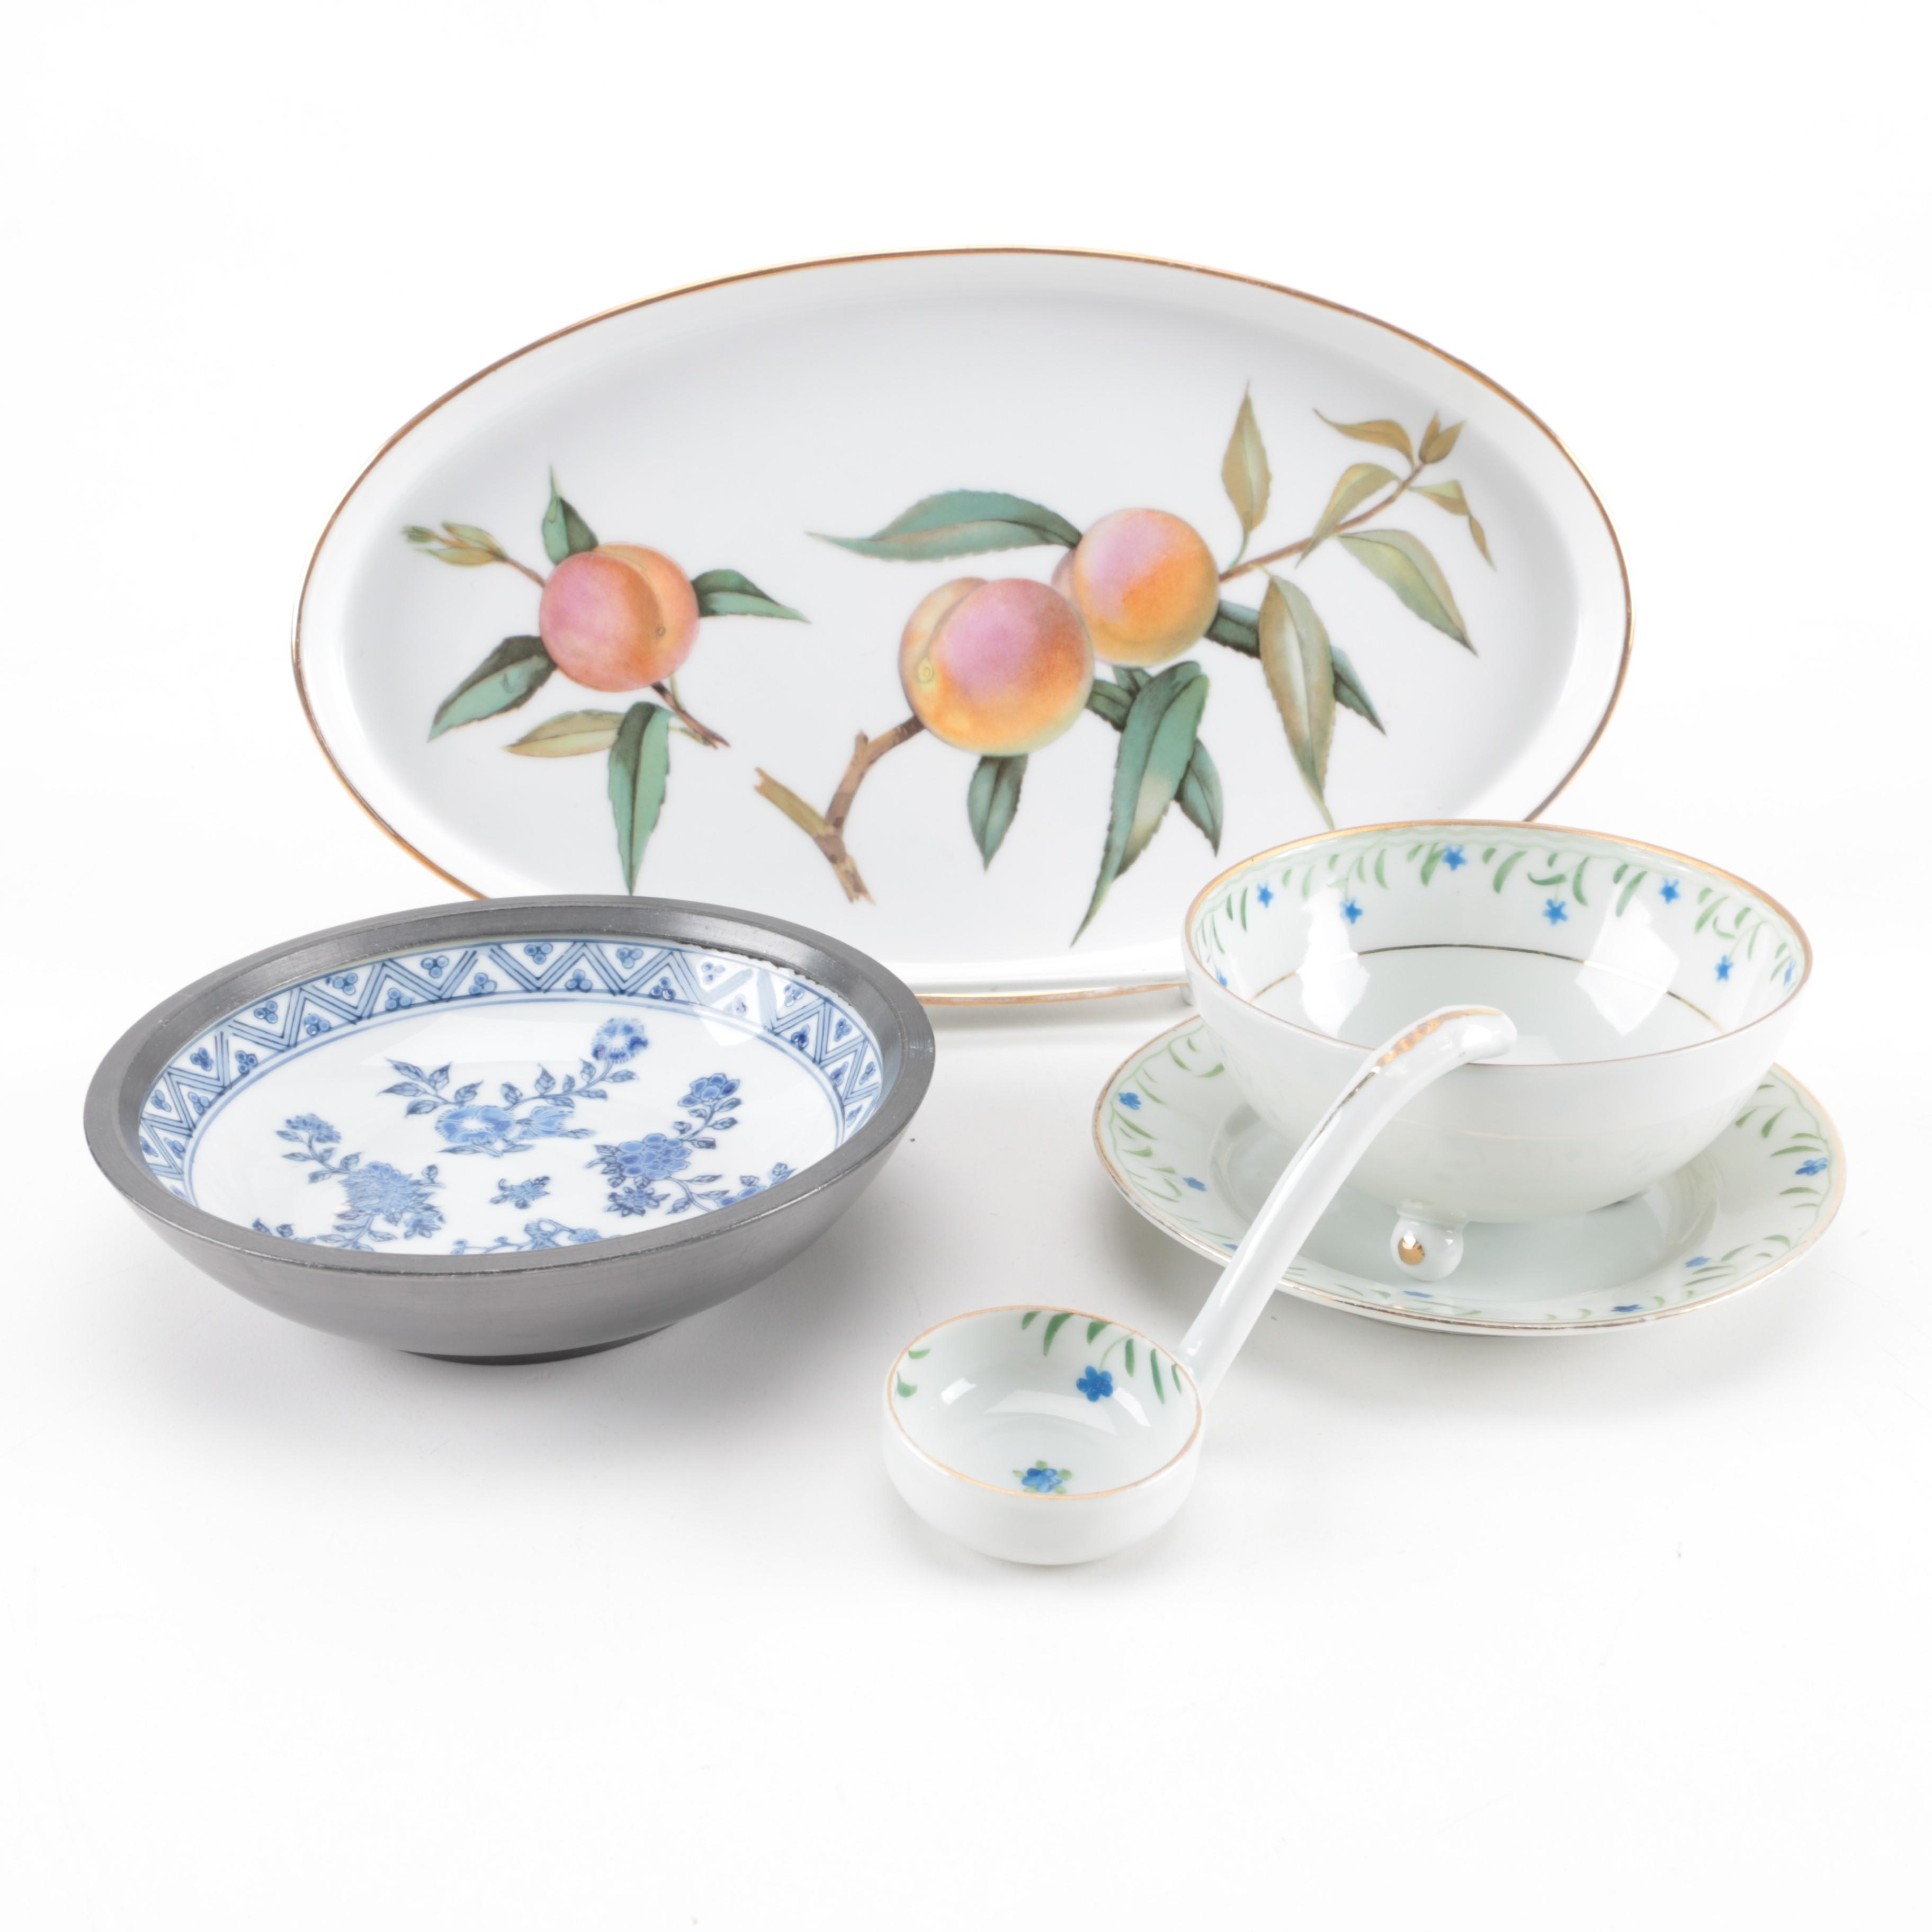 Royal Worcester  Evesham  Oven Proof Dish and a Mayonnaise ...  sc 1 st  EBTH.com & Royal Worcester